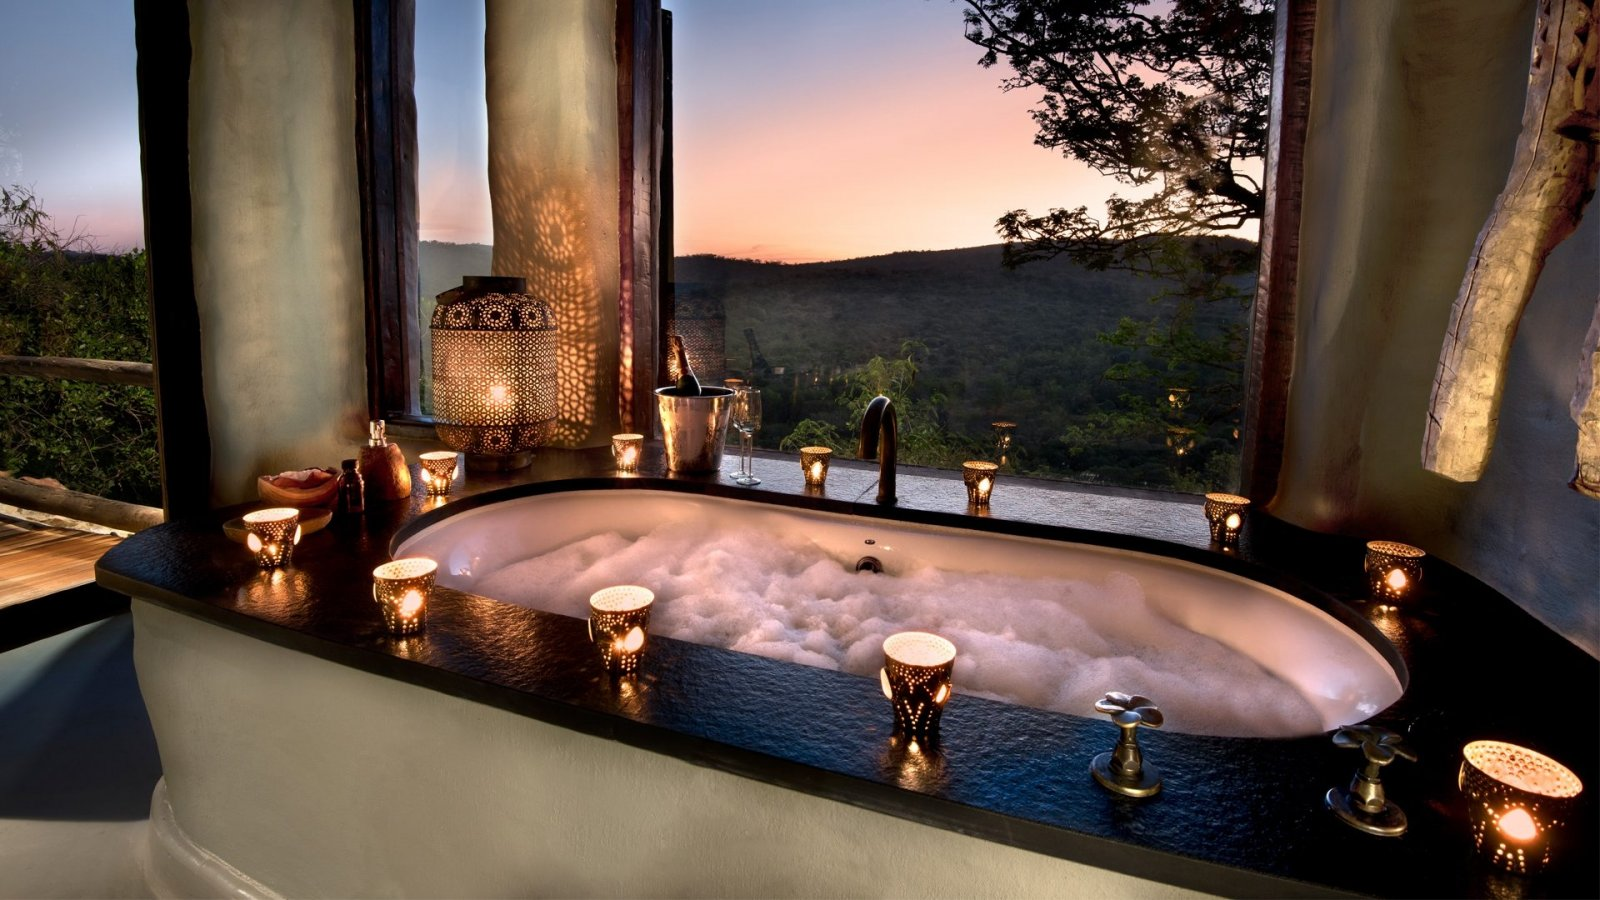 phinda-rock-lodge-guest-bath-luxury-safari-south-africa.jpg